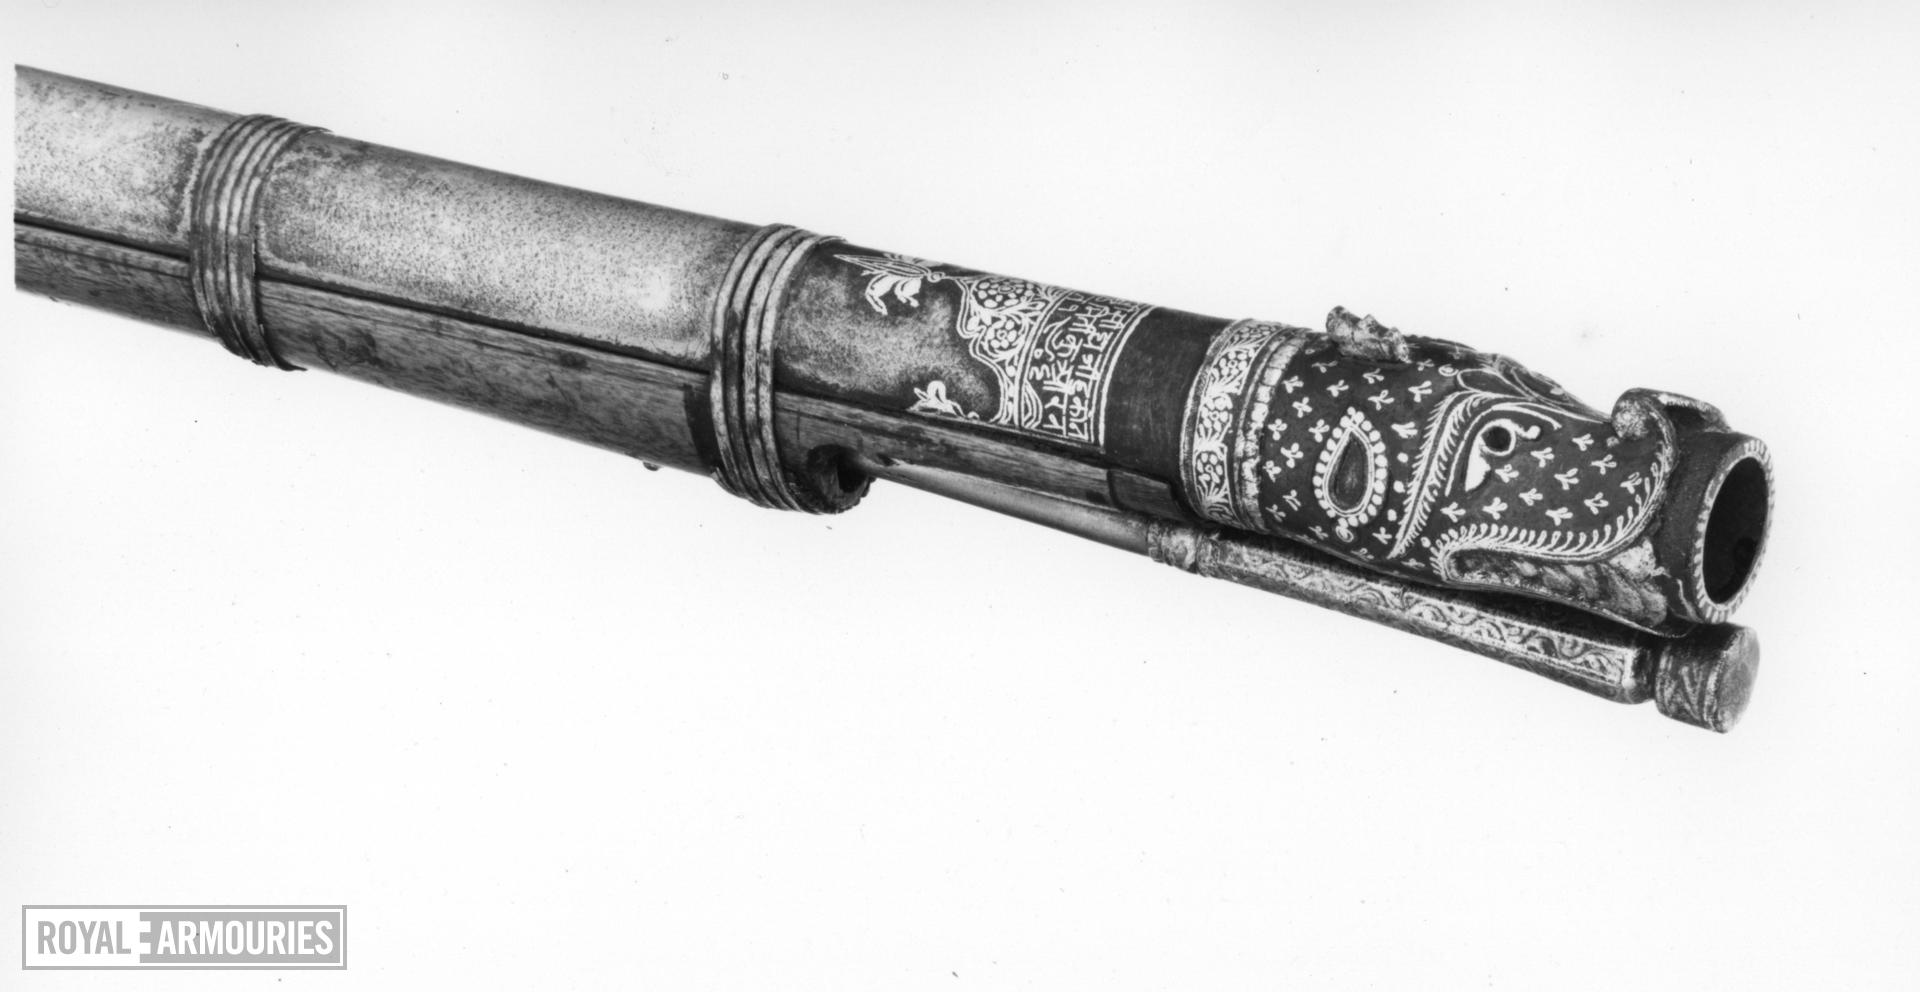 Matchlock musket (toradar) with a tiger headed muzzle